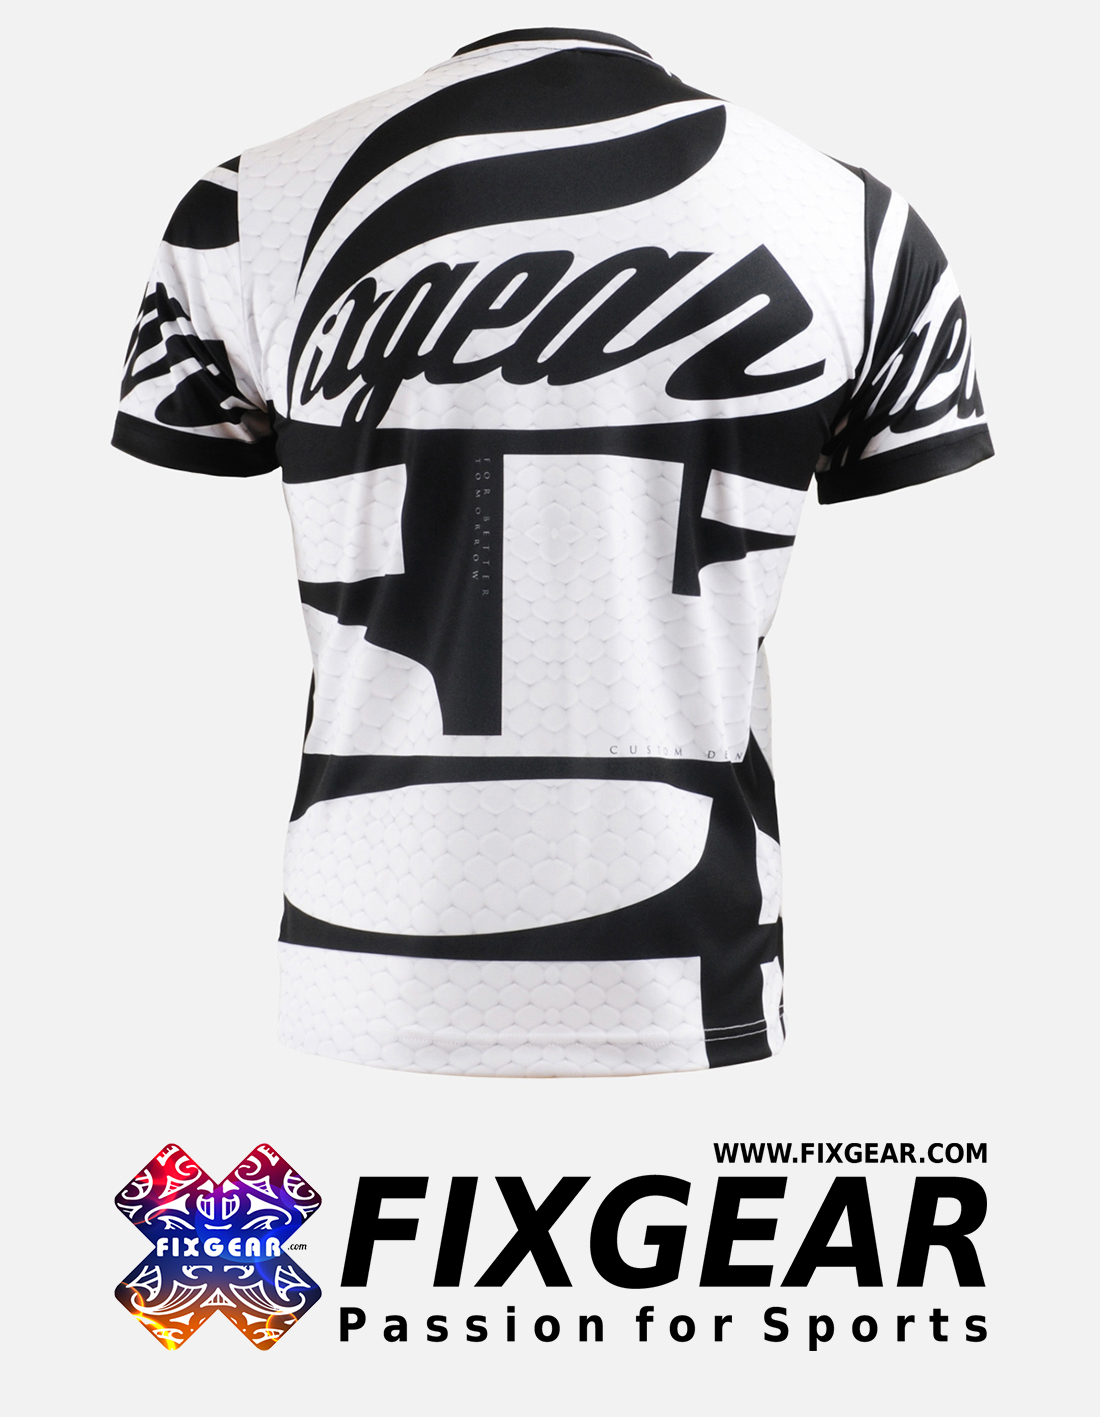 FIXGEAR RM-3402 Men's Casual short sleeve Crew-Neck T-Shirt